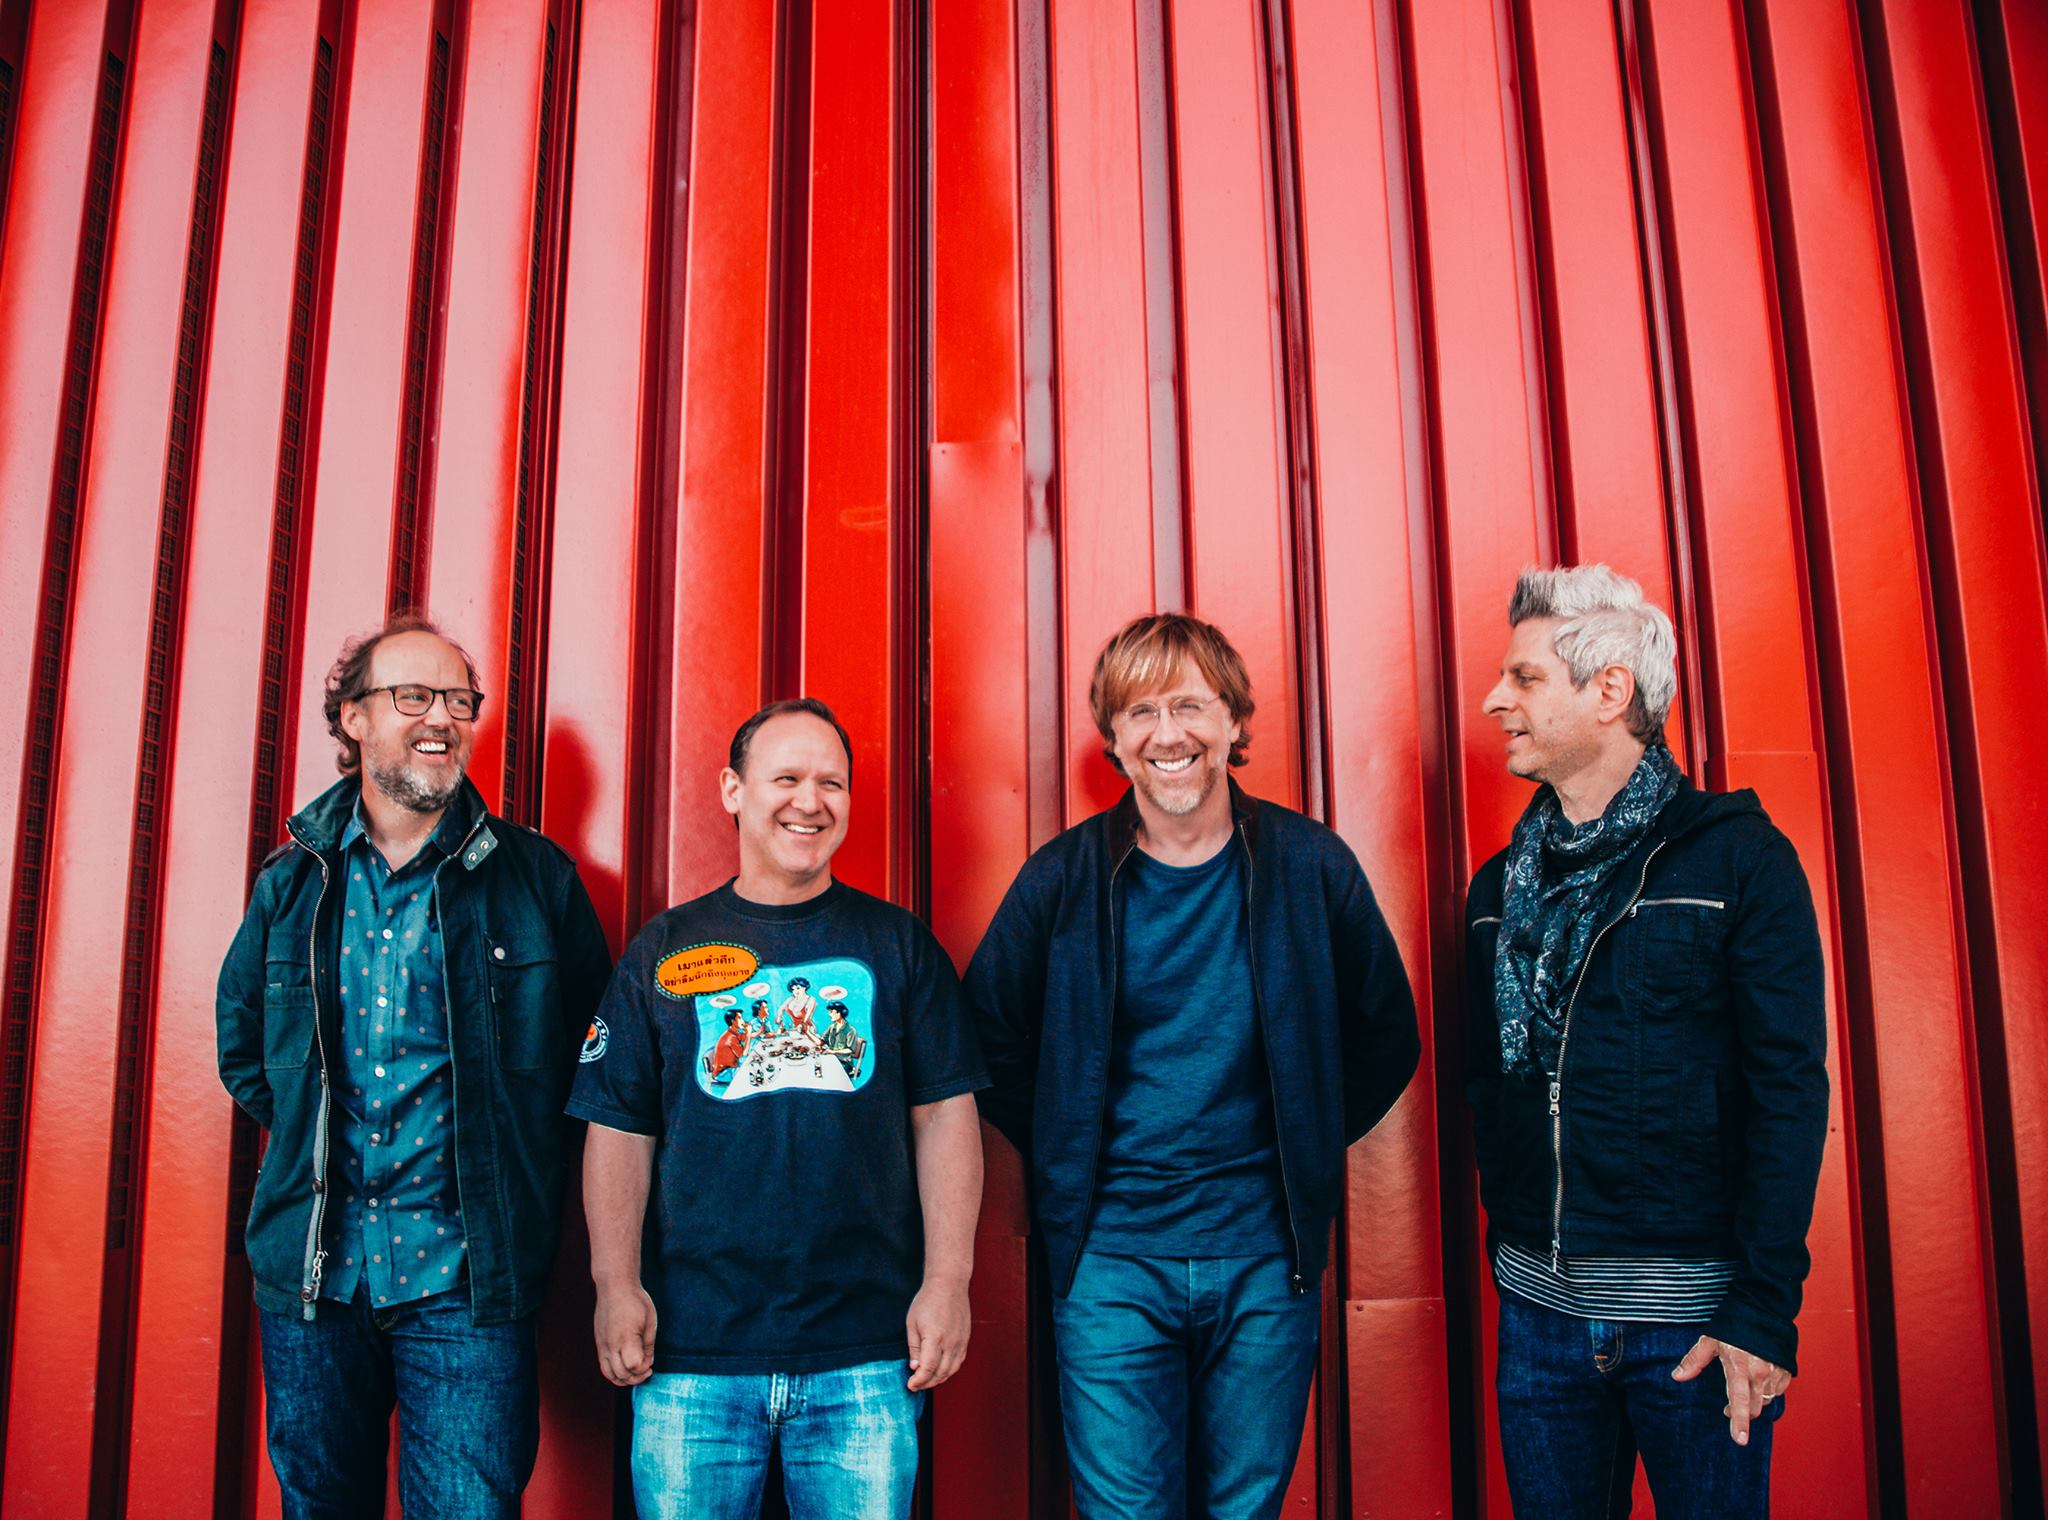 Phish Will Be Returning to Mexico in February 2019